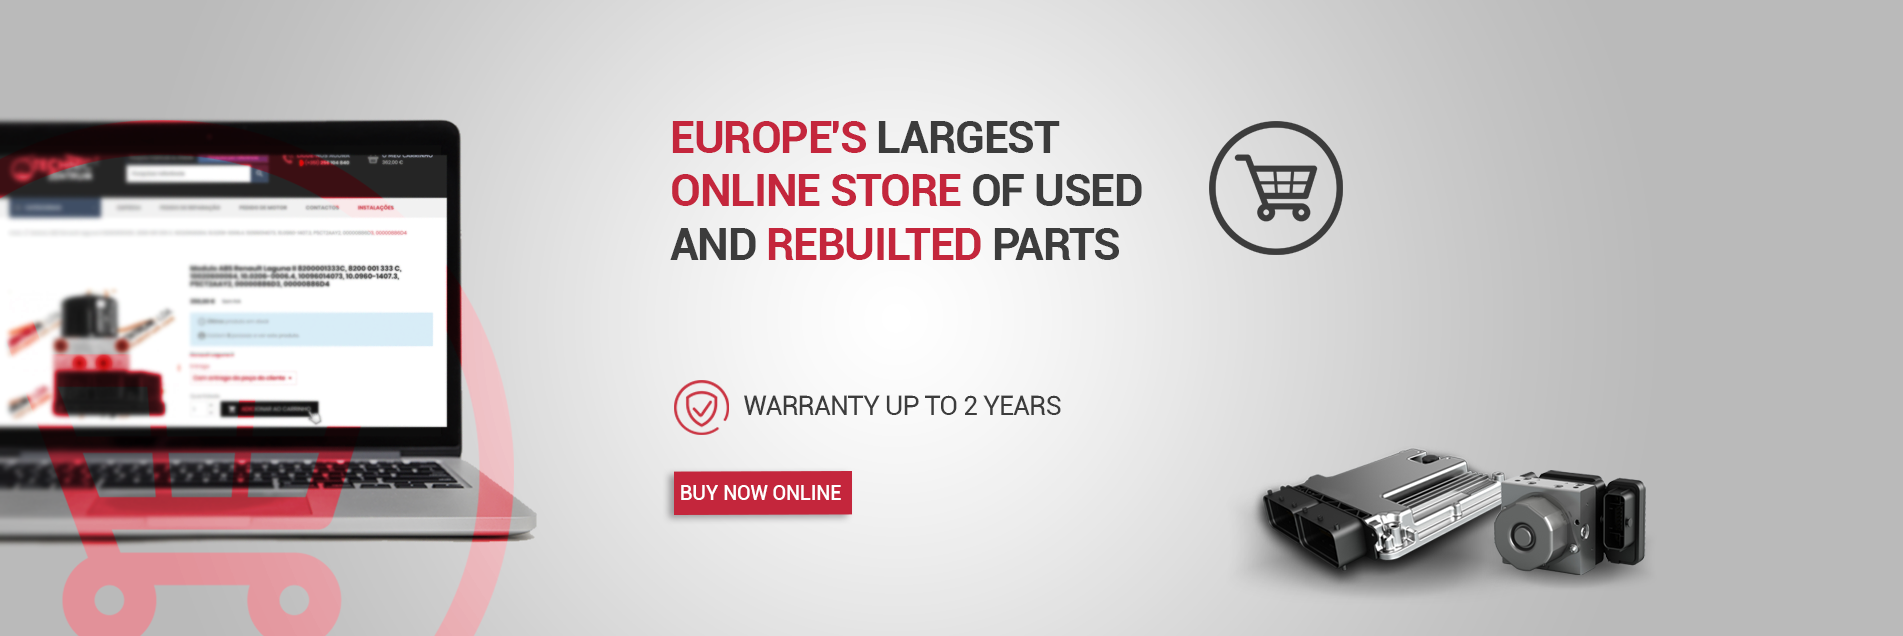 Europe's largest online store of used and rebuilted parts